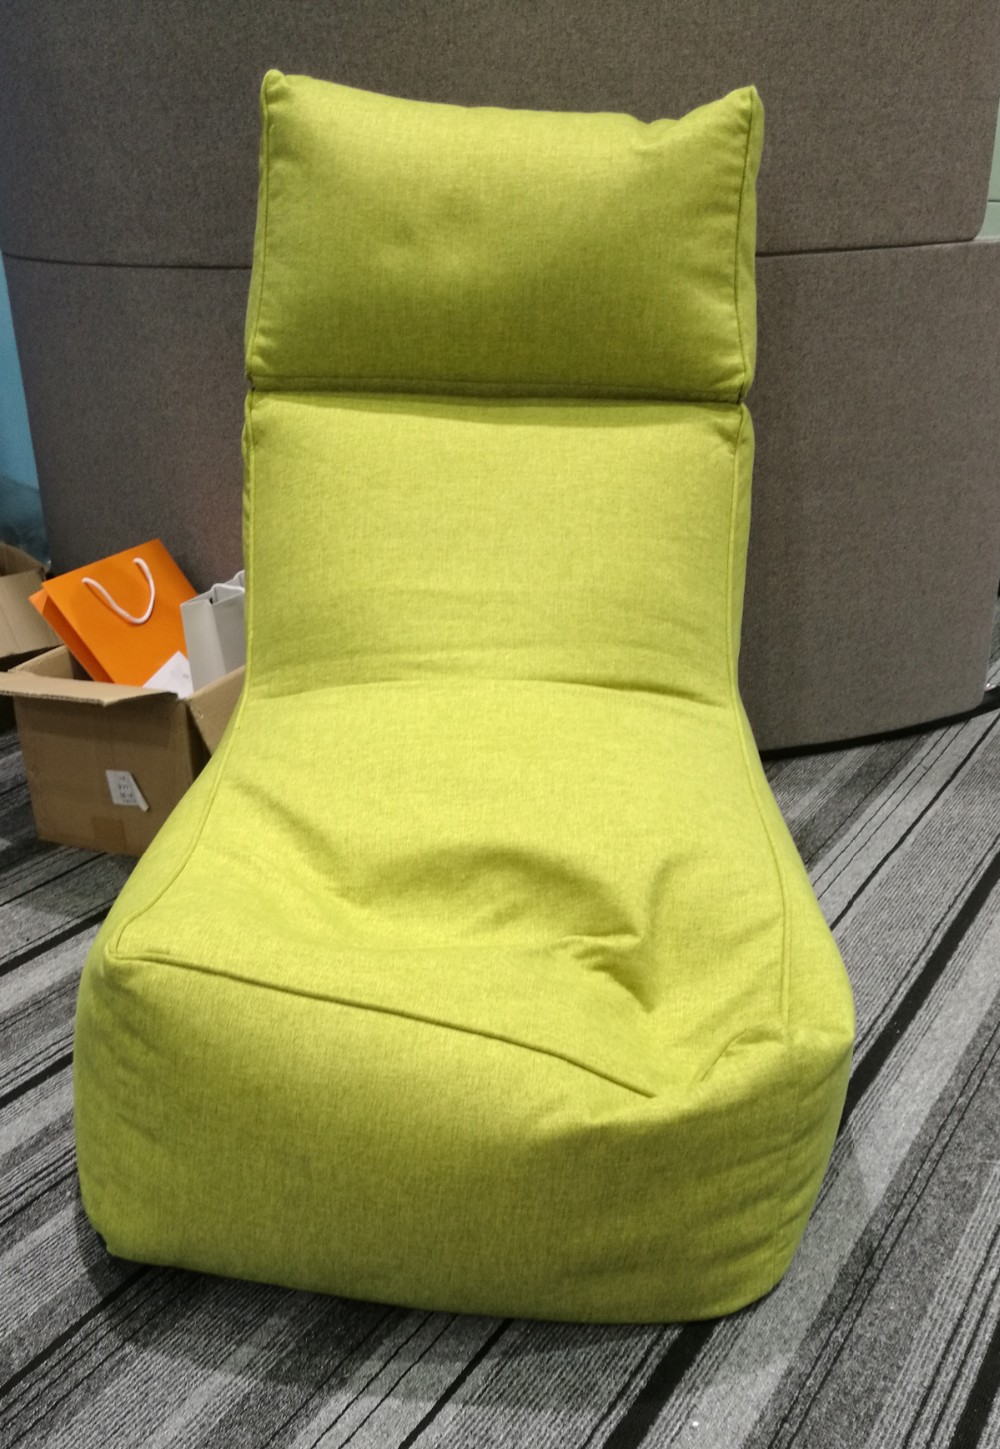 Heated Bean Bag Chairs, Heated Bean Bag Chairs Suppliers and ...